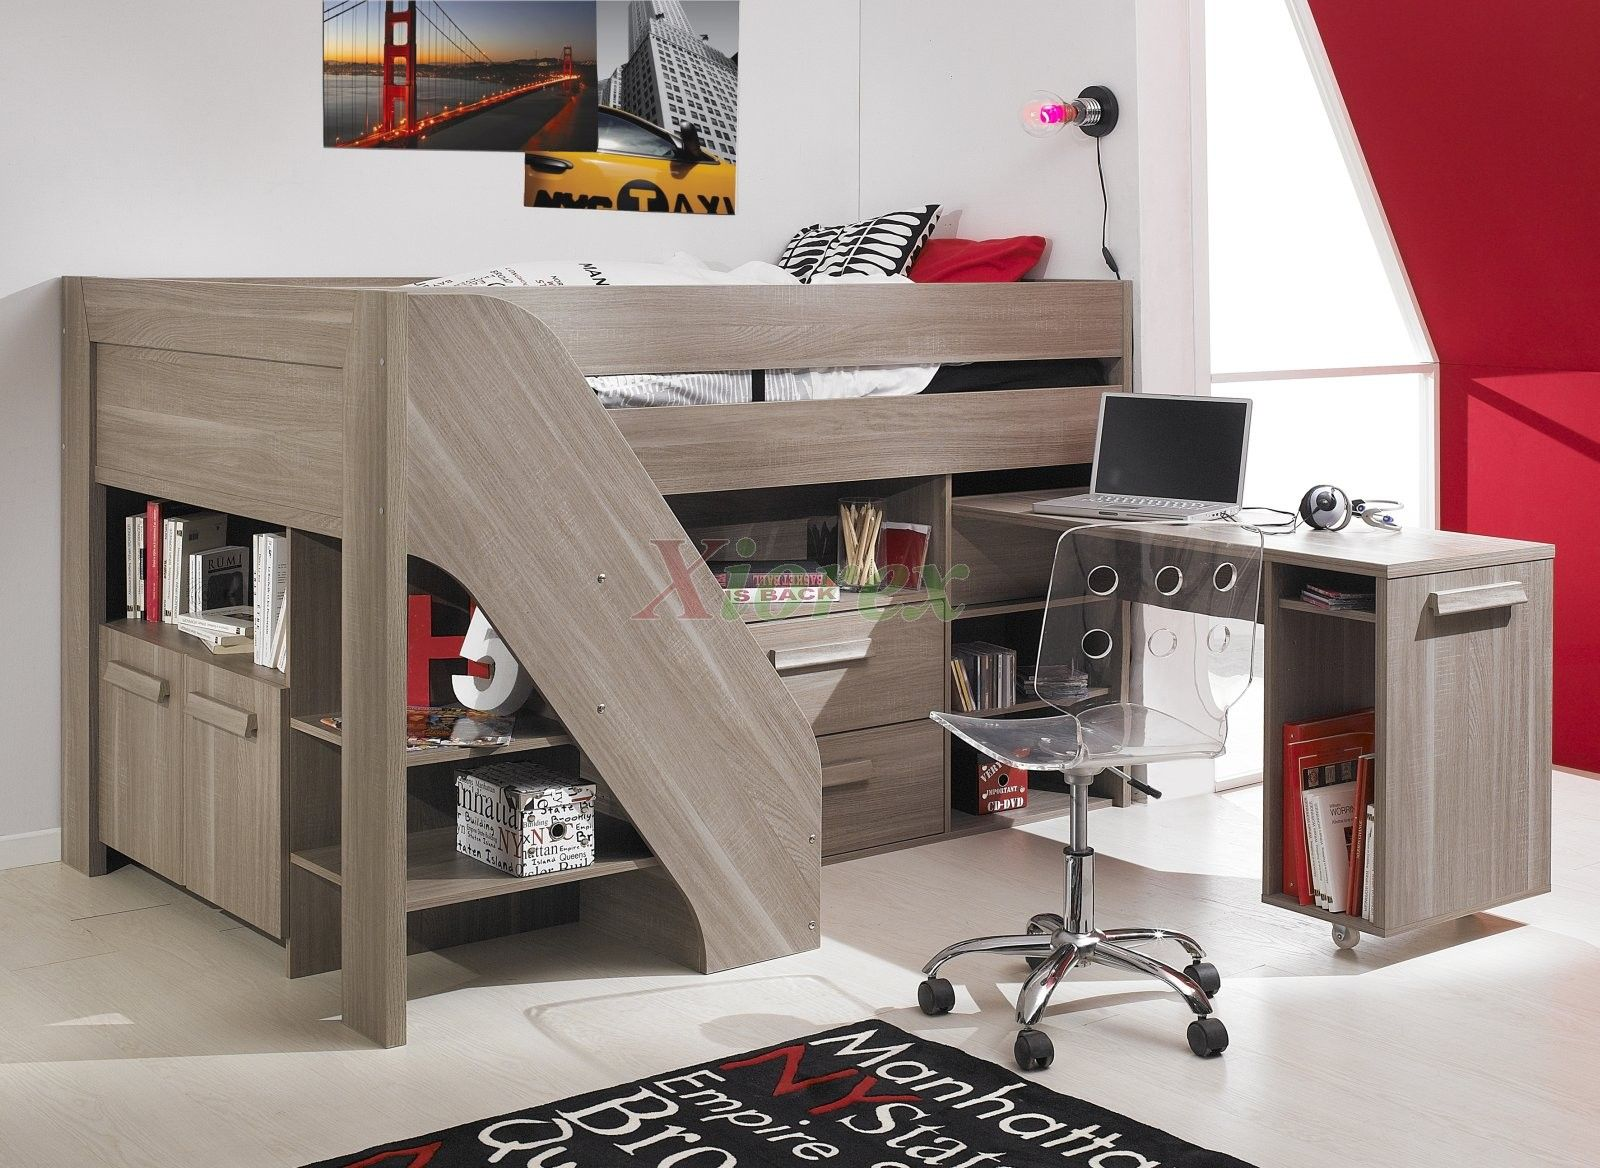 Boys Loft Bed With Desk Gami Hangun Youth Cabin Loft Beds With Stairs Desk For Boys Girls Bunk Bed With Desk Cool Loft Beds Bed With Desk Underneath